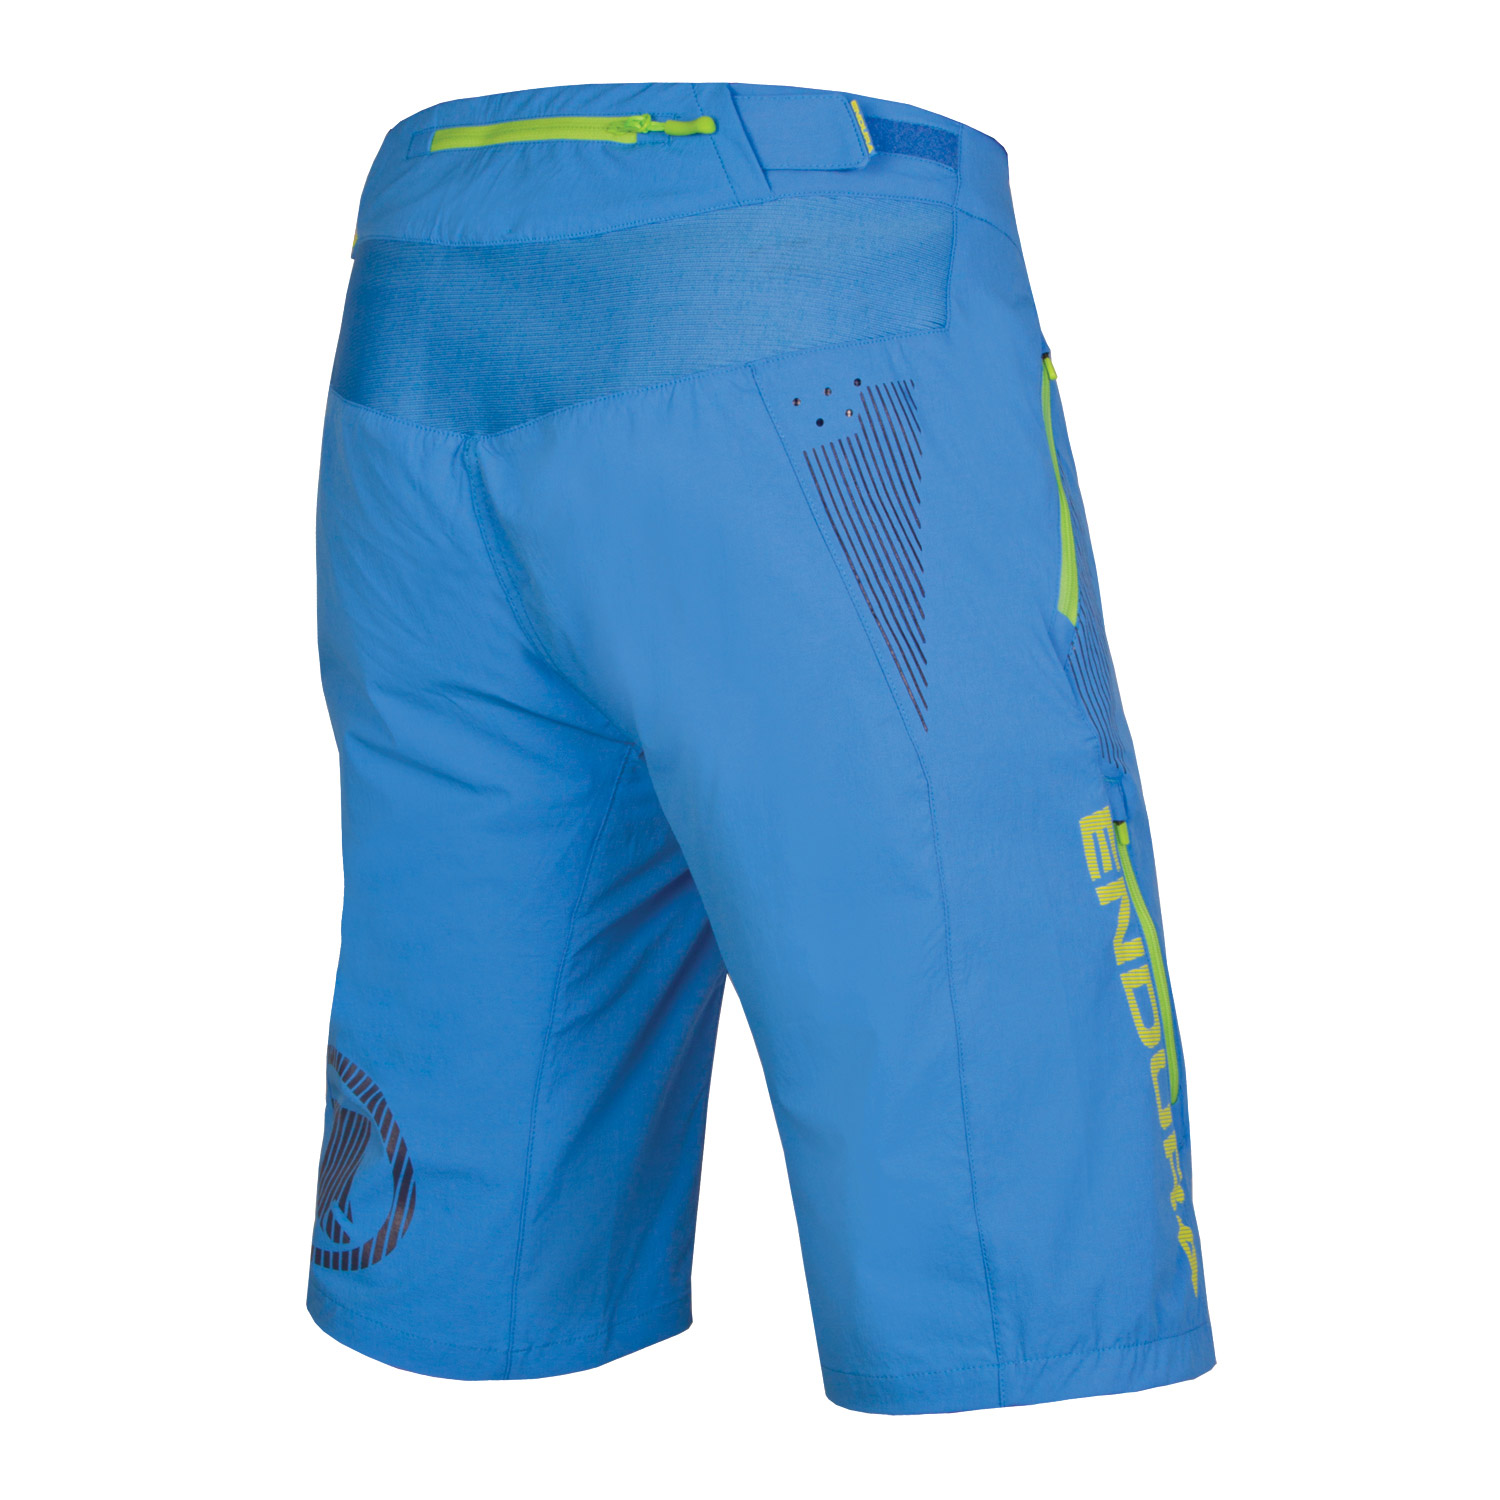 SingleTrack Lite Short II back